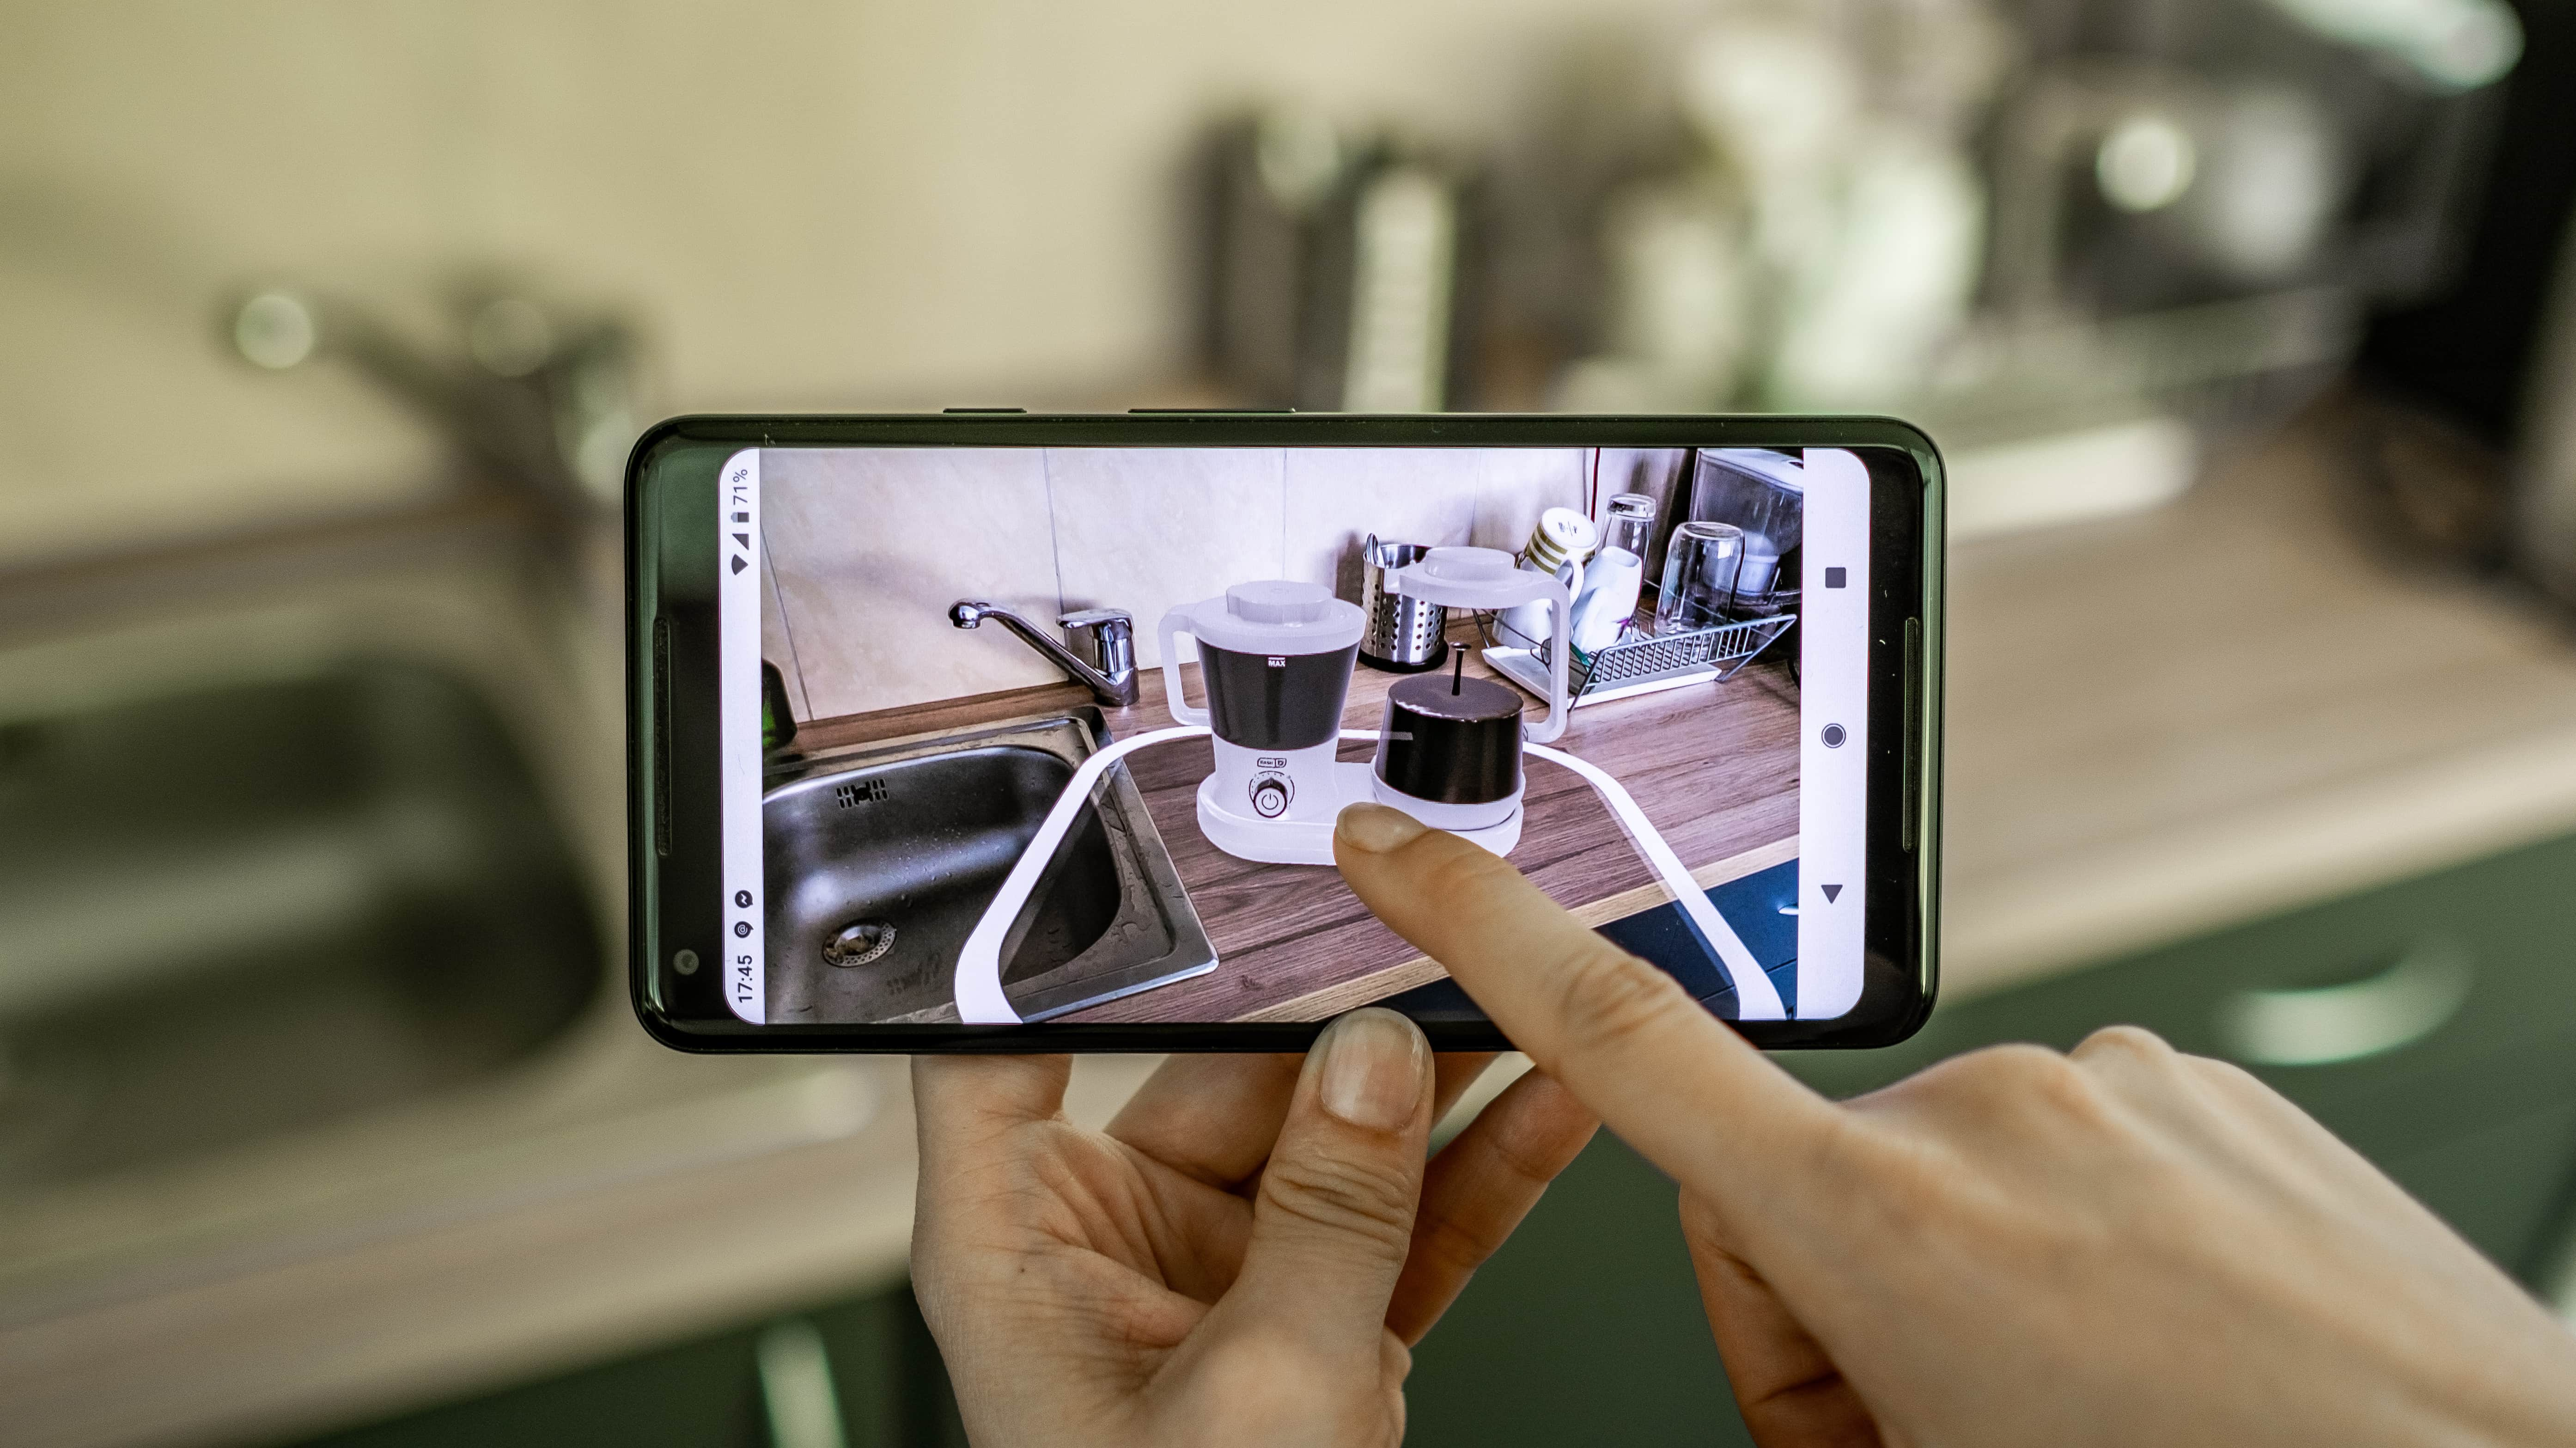 The Vectary Viewer now supports AR on both iPhones and Androids